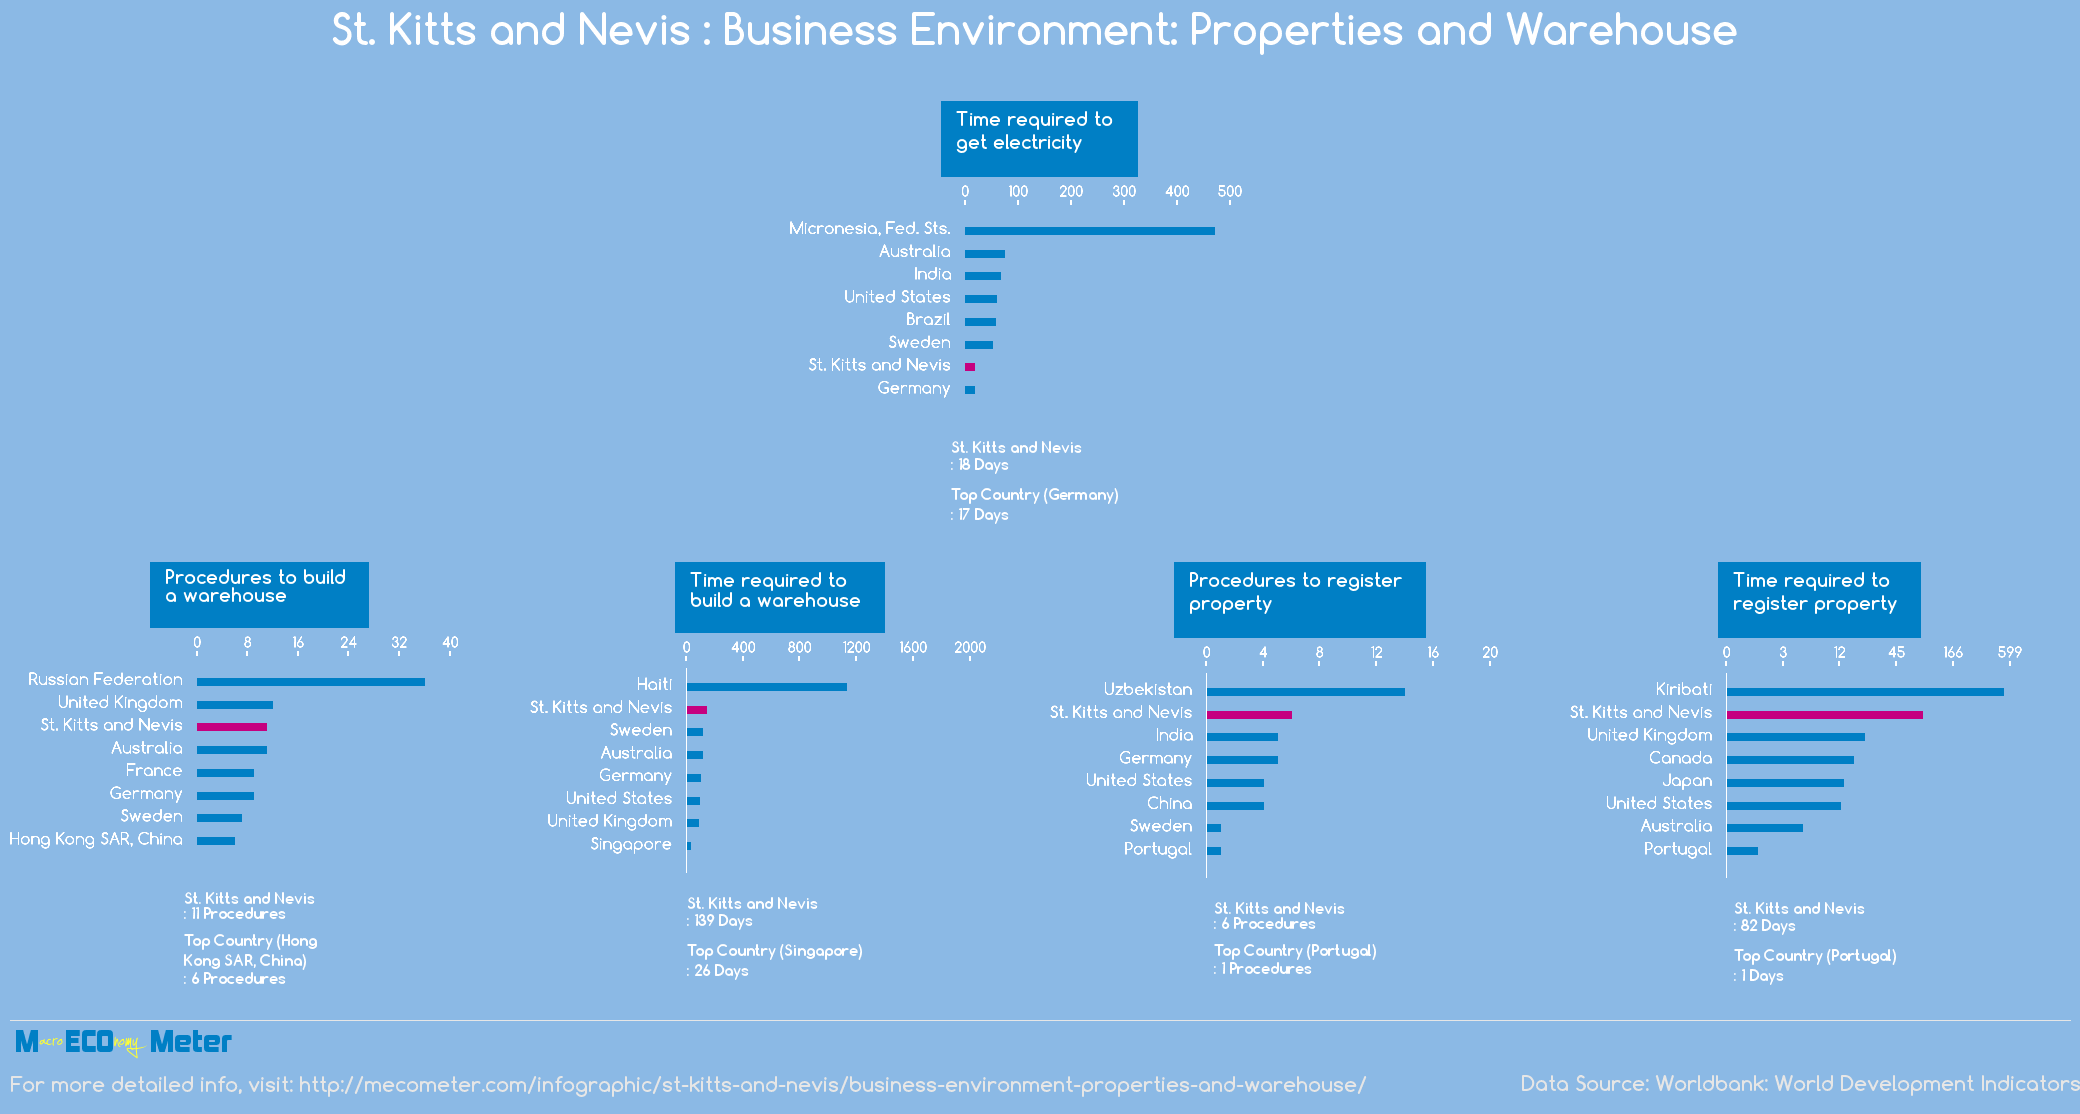 St. Kitts and Nevis : Business Environment: Properties and Warehouse